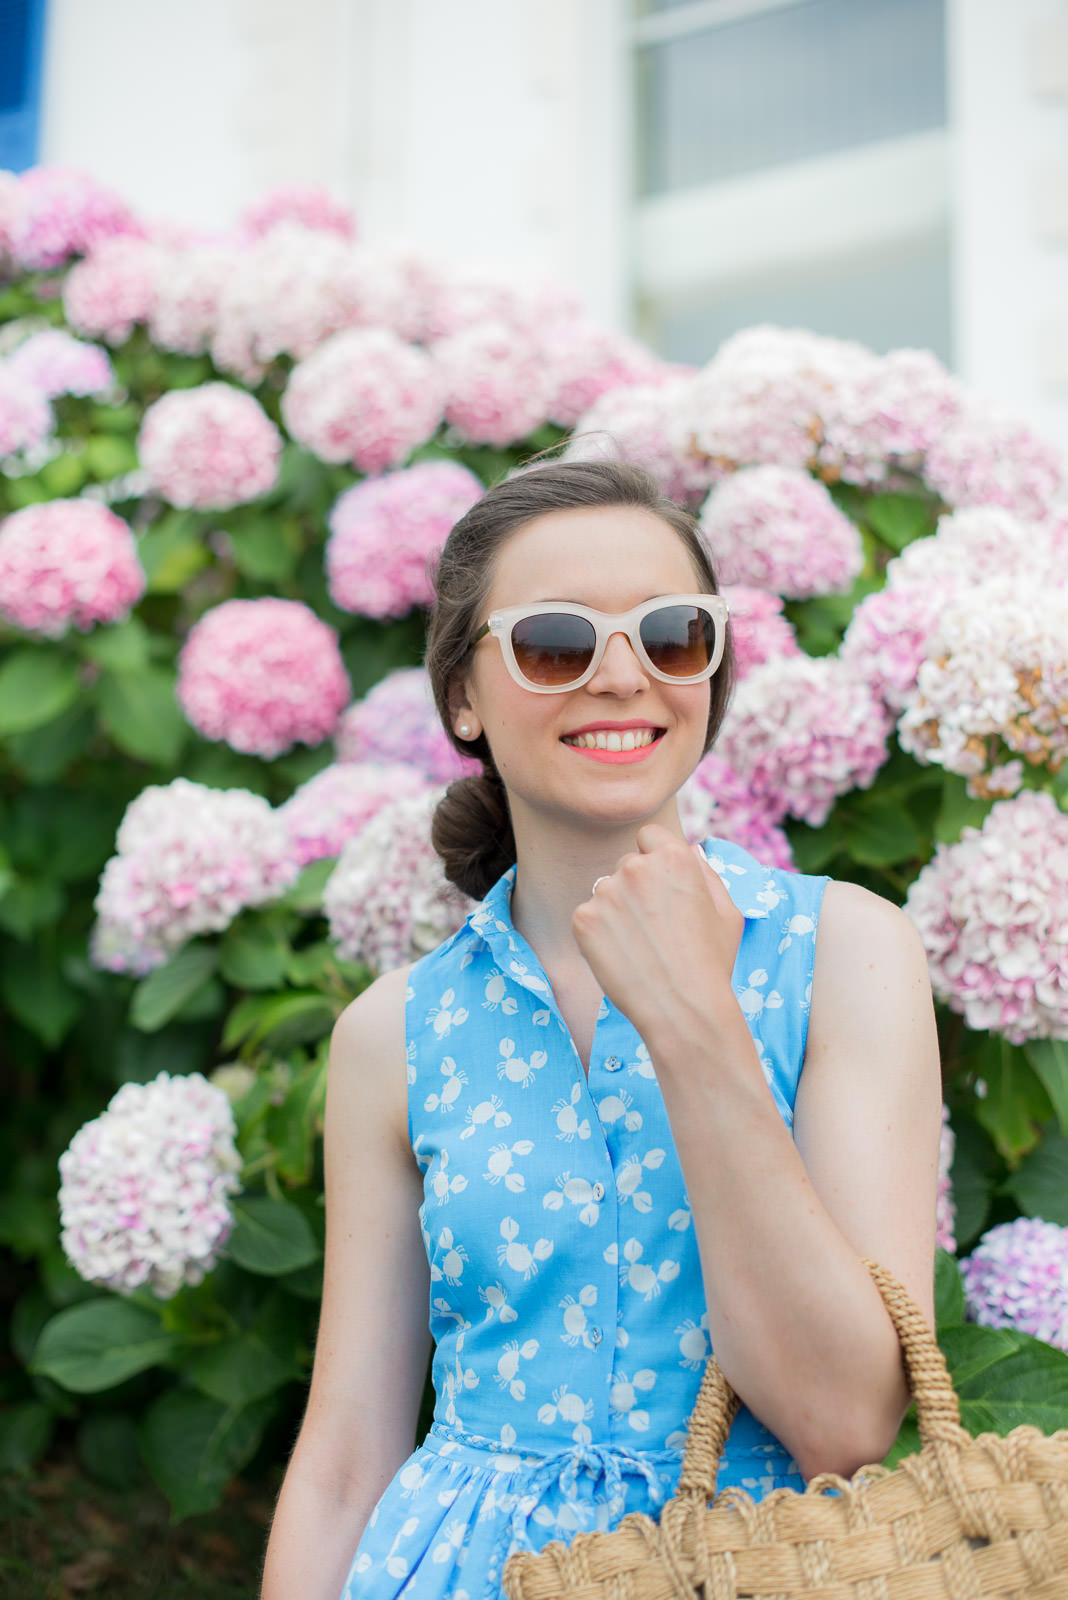 Blog-Mode-And-The-City-Looks-Hortensias-Biarritz-7